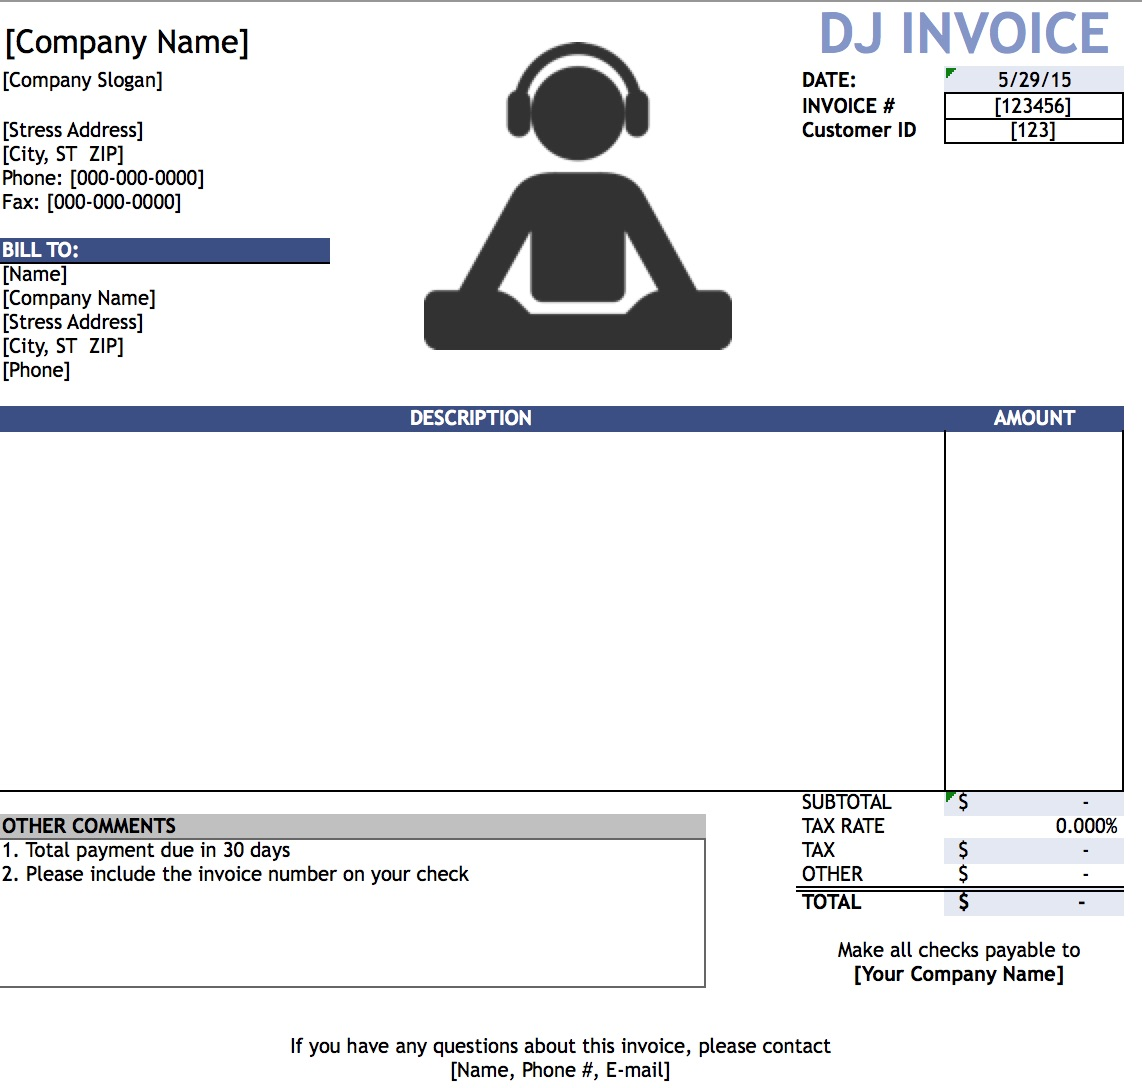 Free DJ Disc Jockey Invoice Template Excel PDF Word Doc - Invoice examples in word for service business